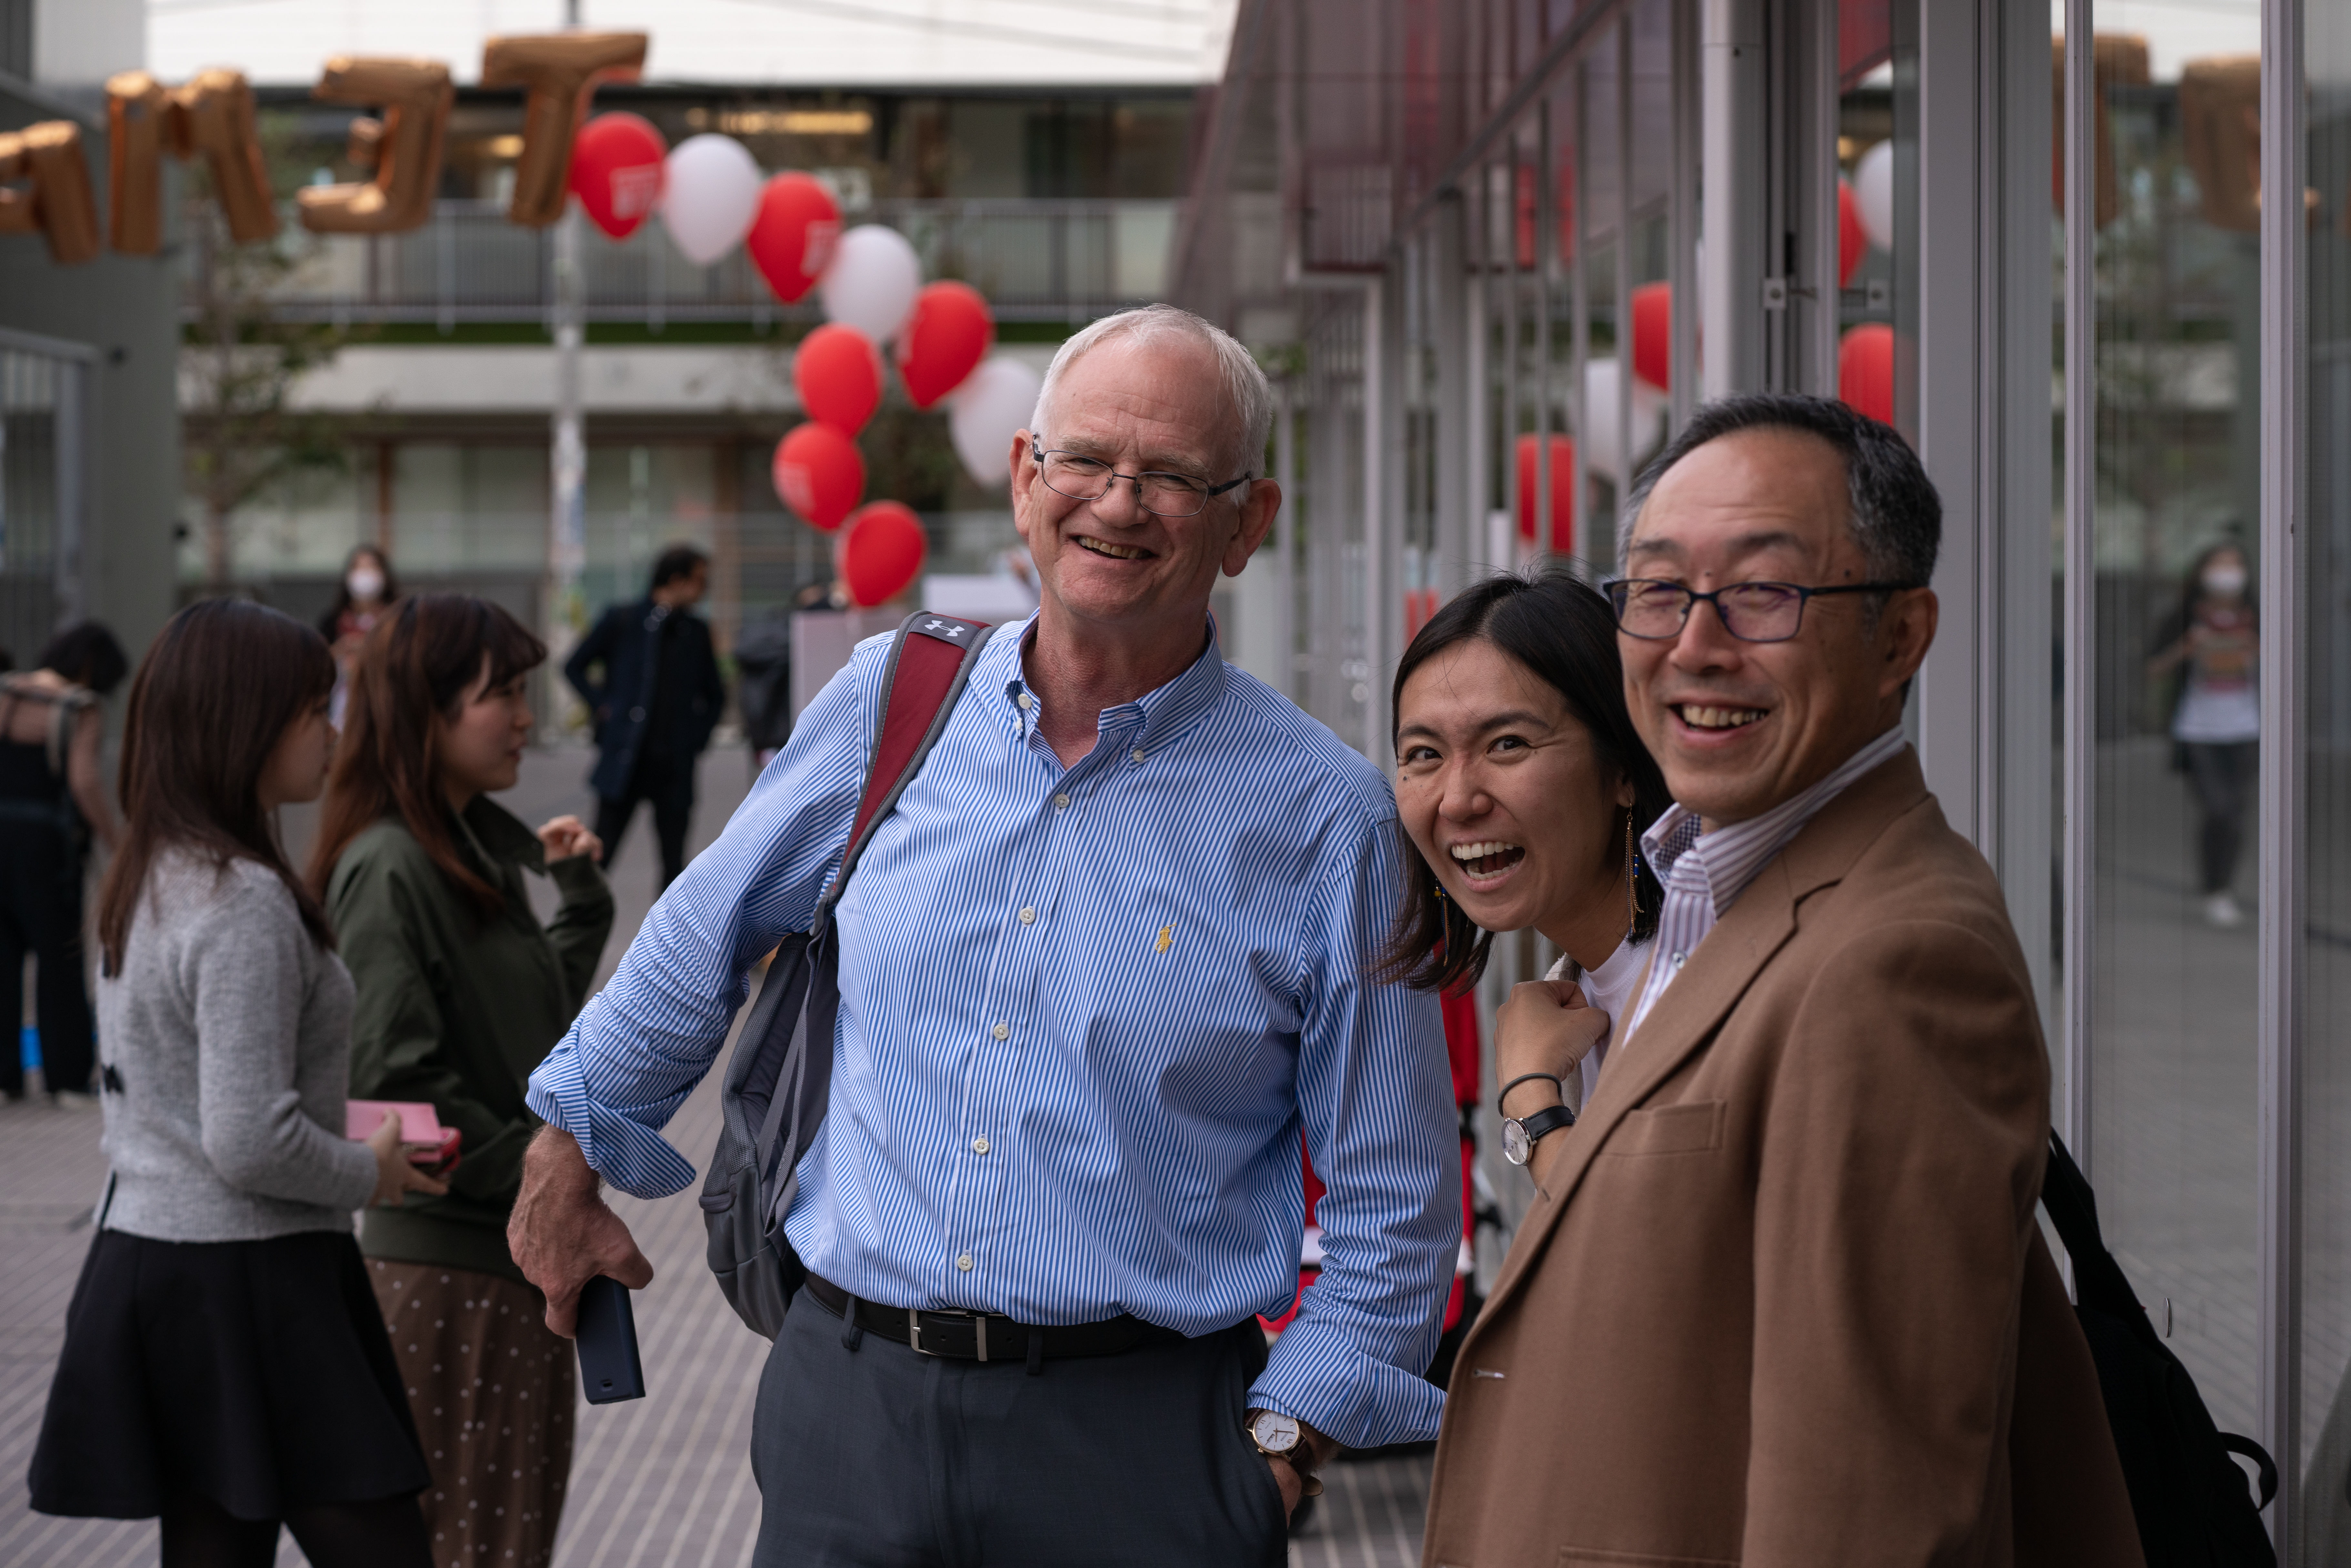 The dean of Temple University Japan poses with two other people.